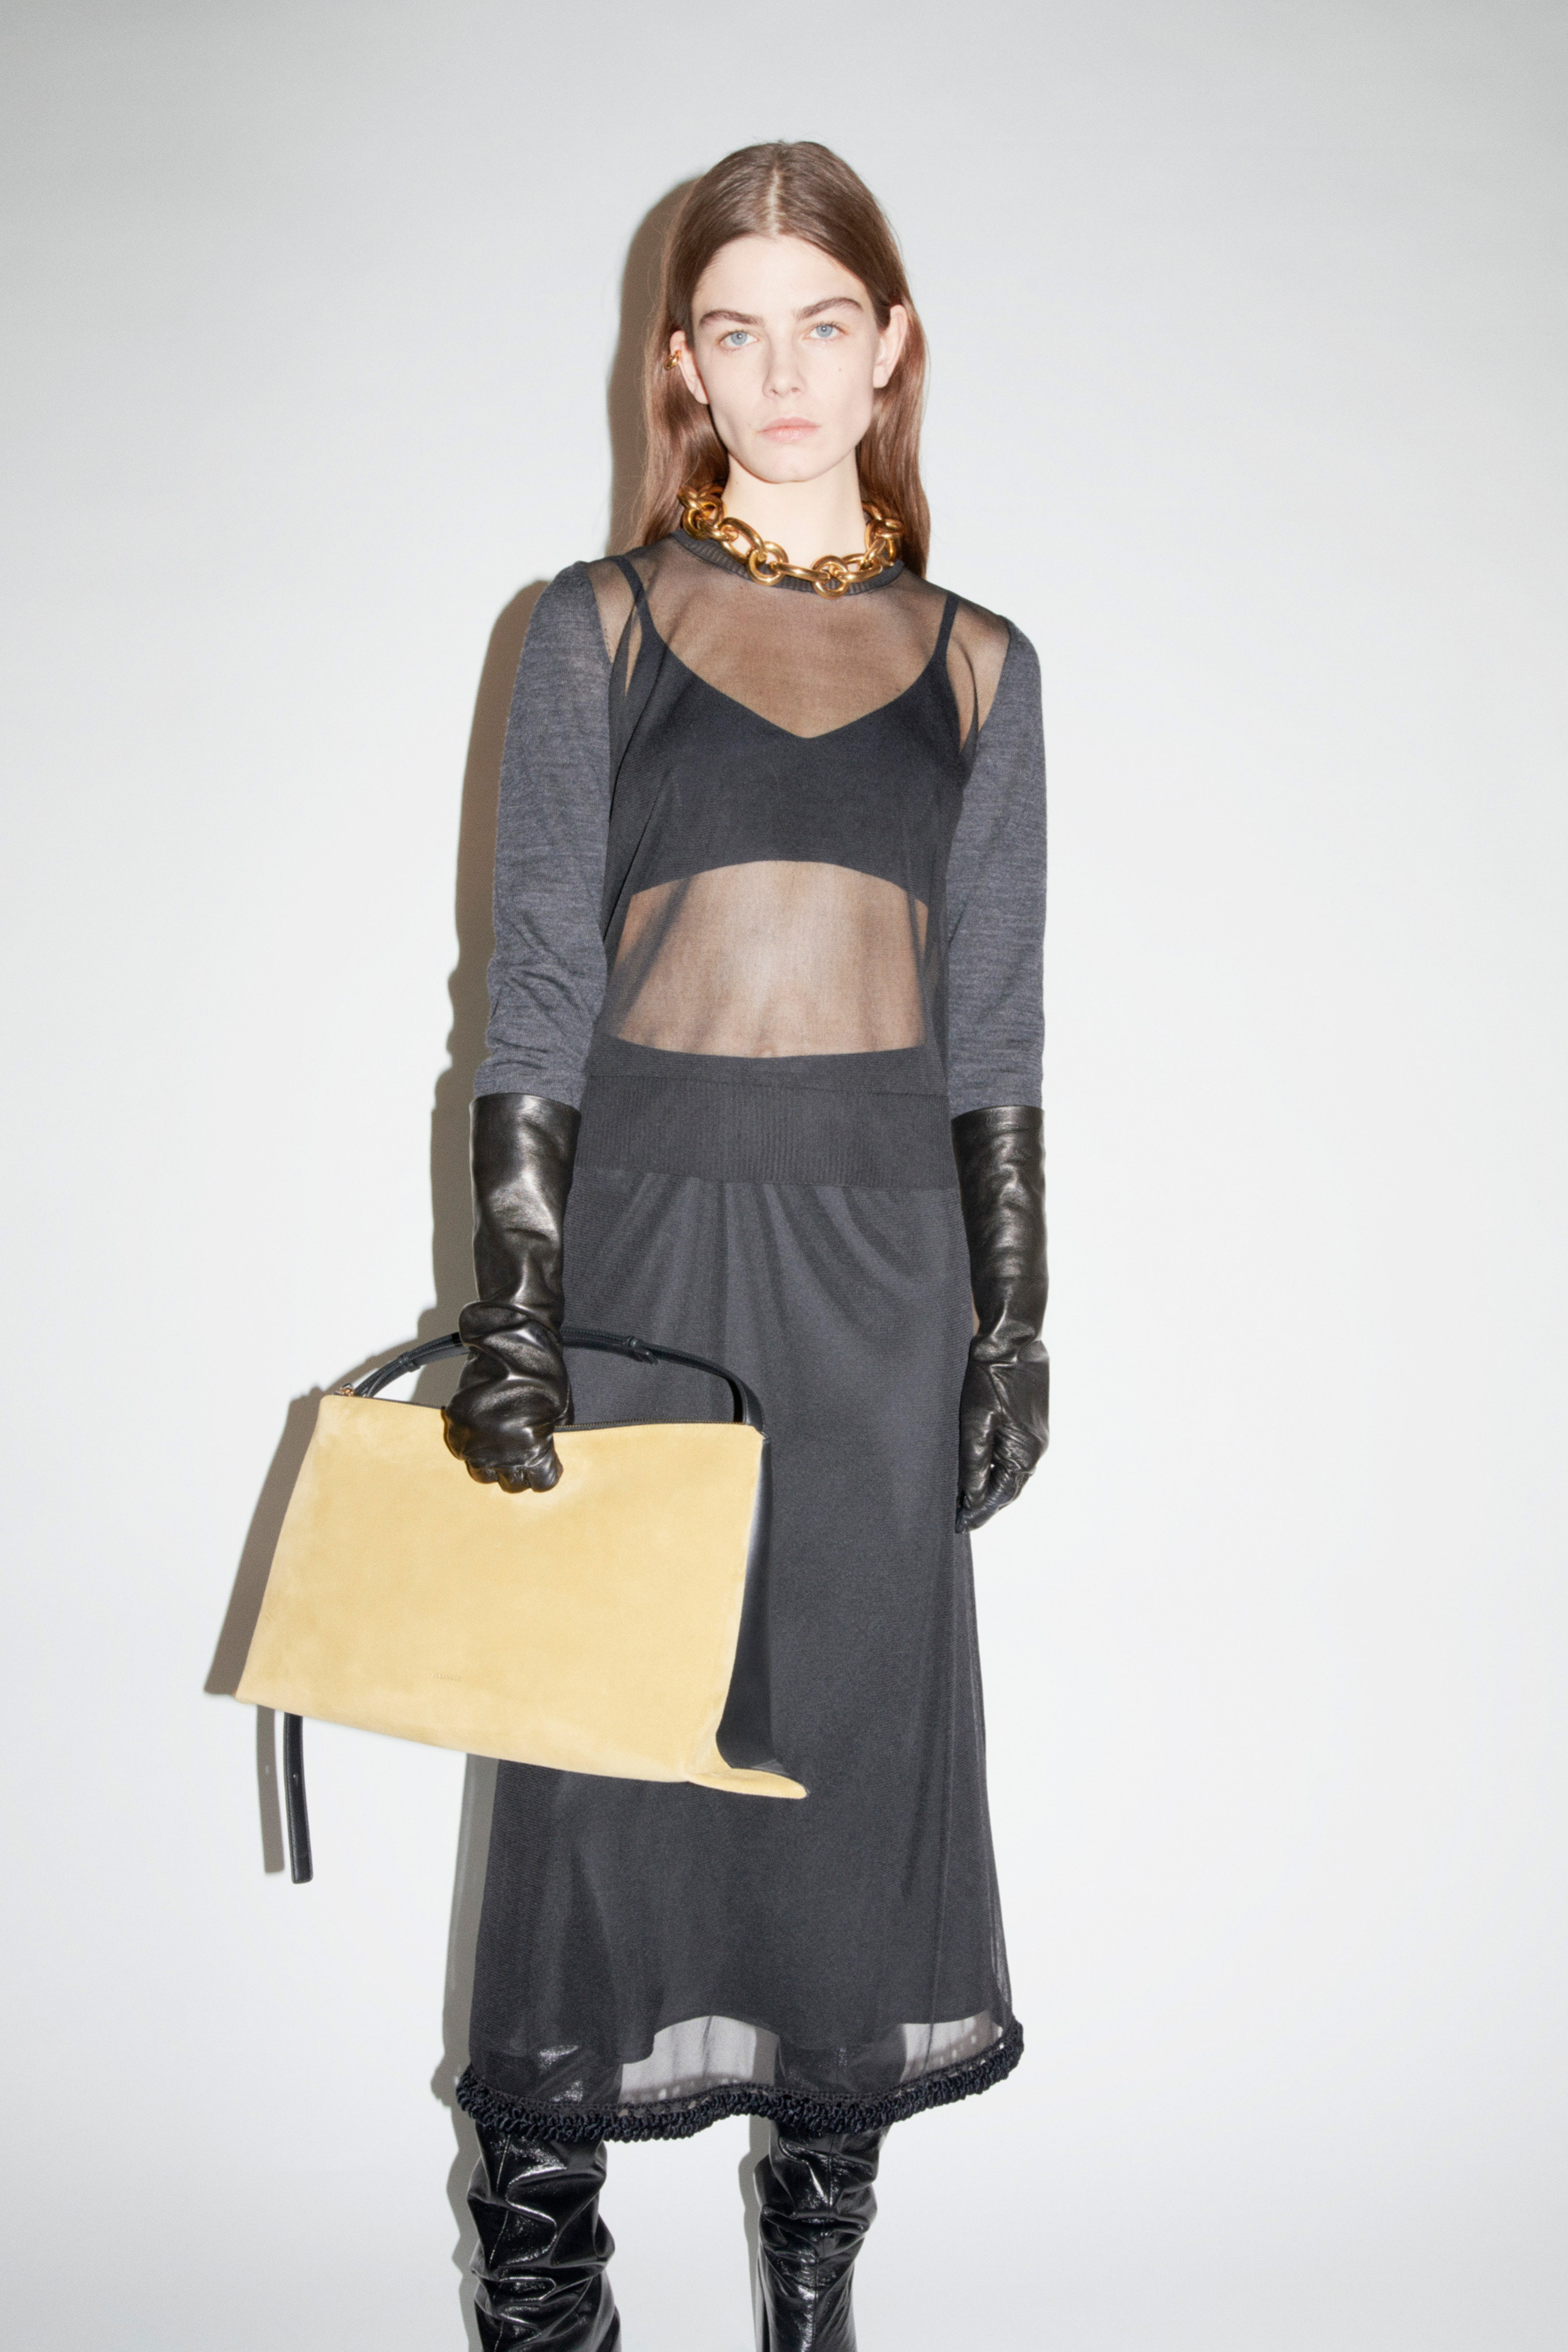 For walks in the fresh air: A seasonal collection of Jil Sander arrived at Asthik (photo 4)